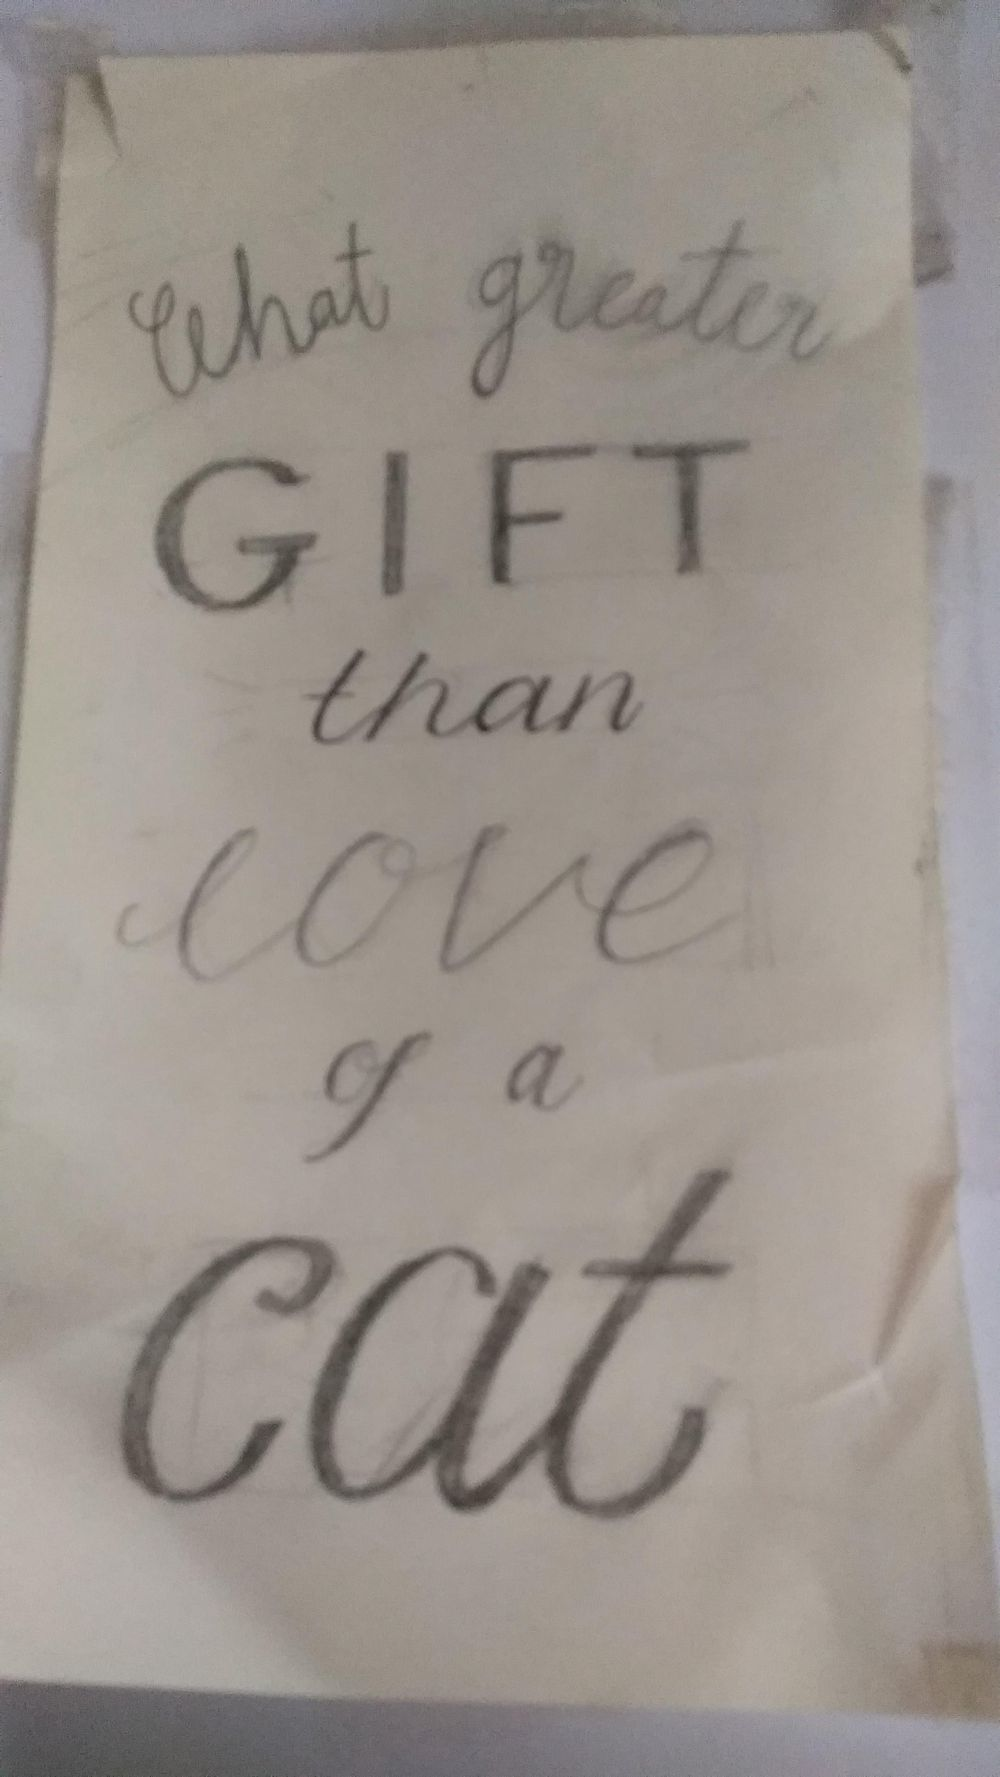 What greater gift than... - image 4 - student project